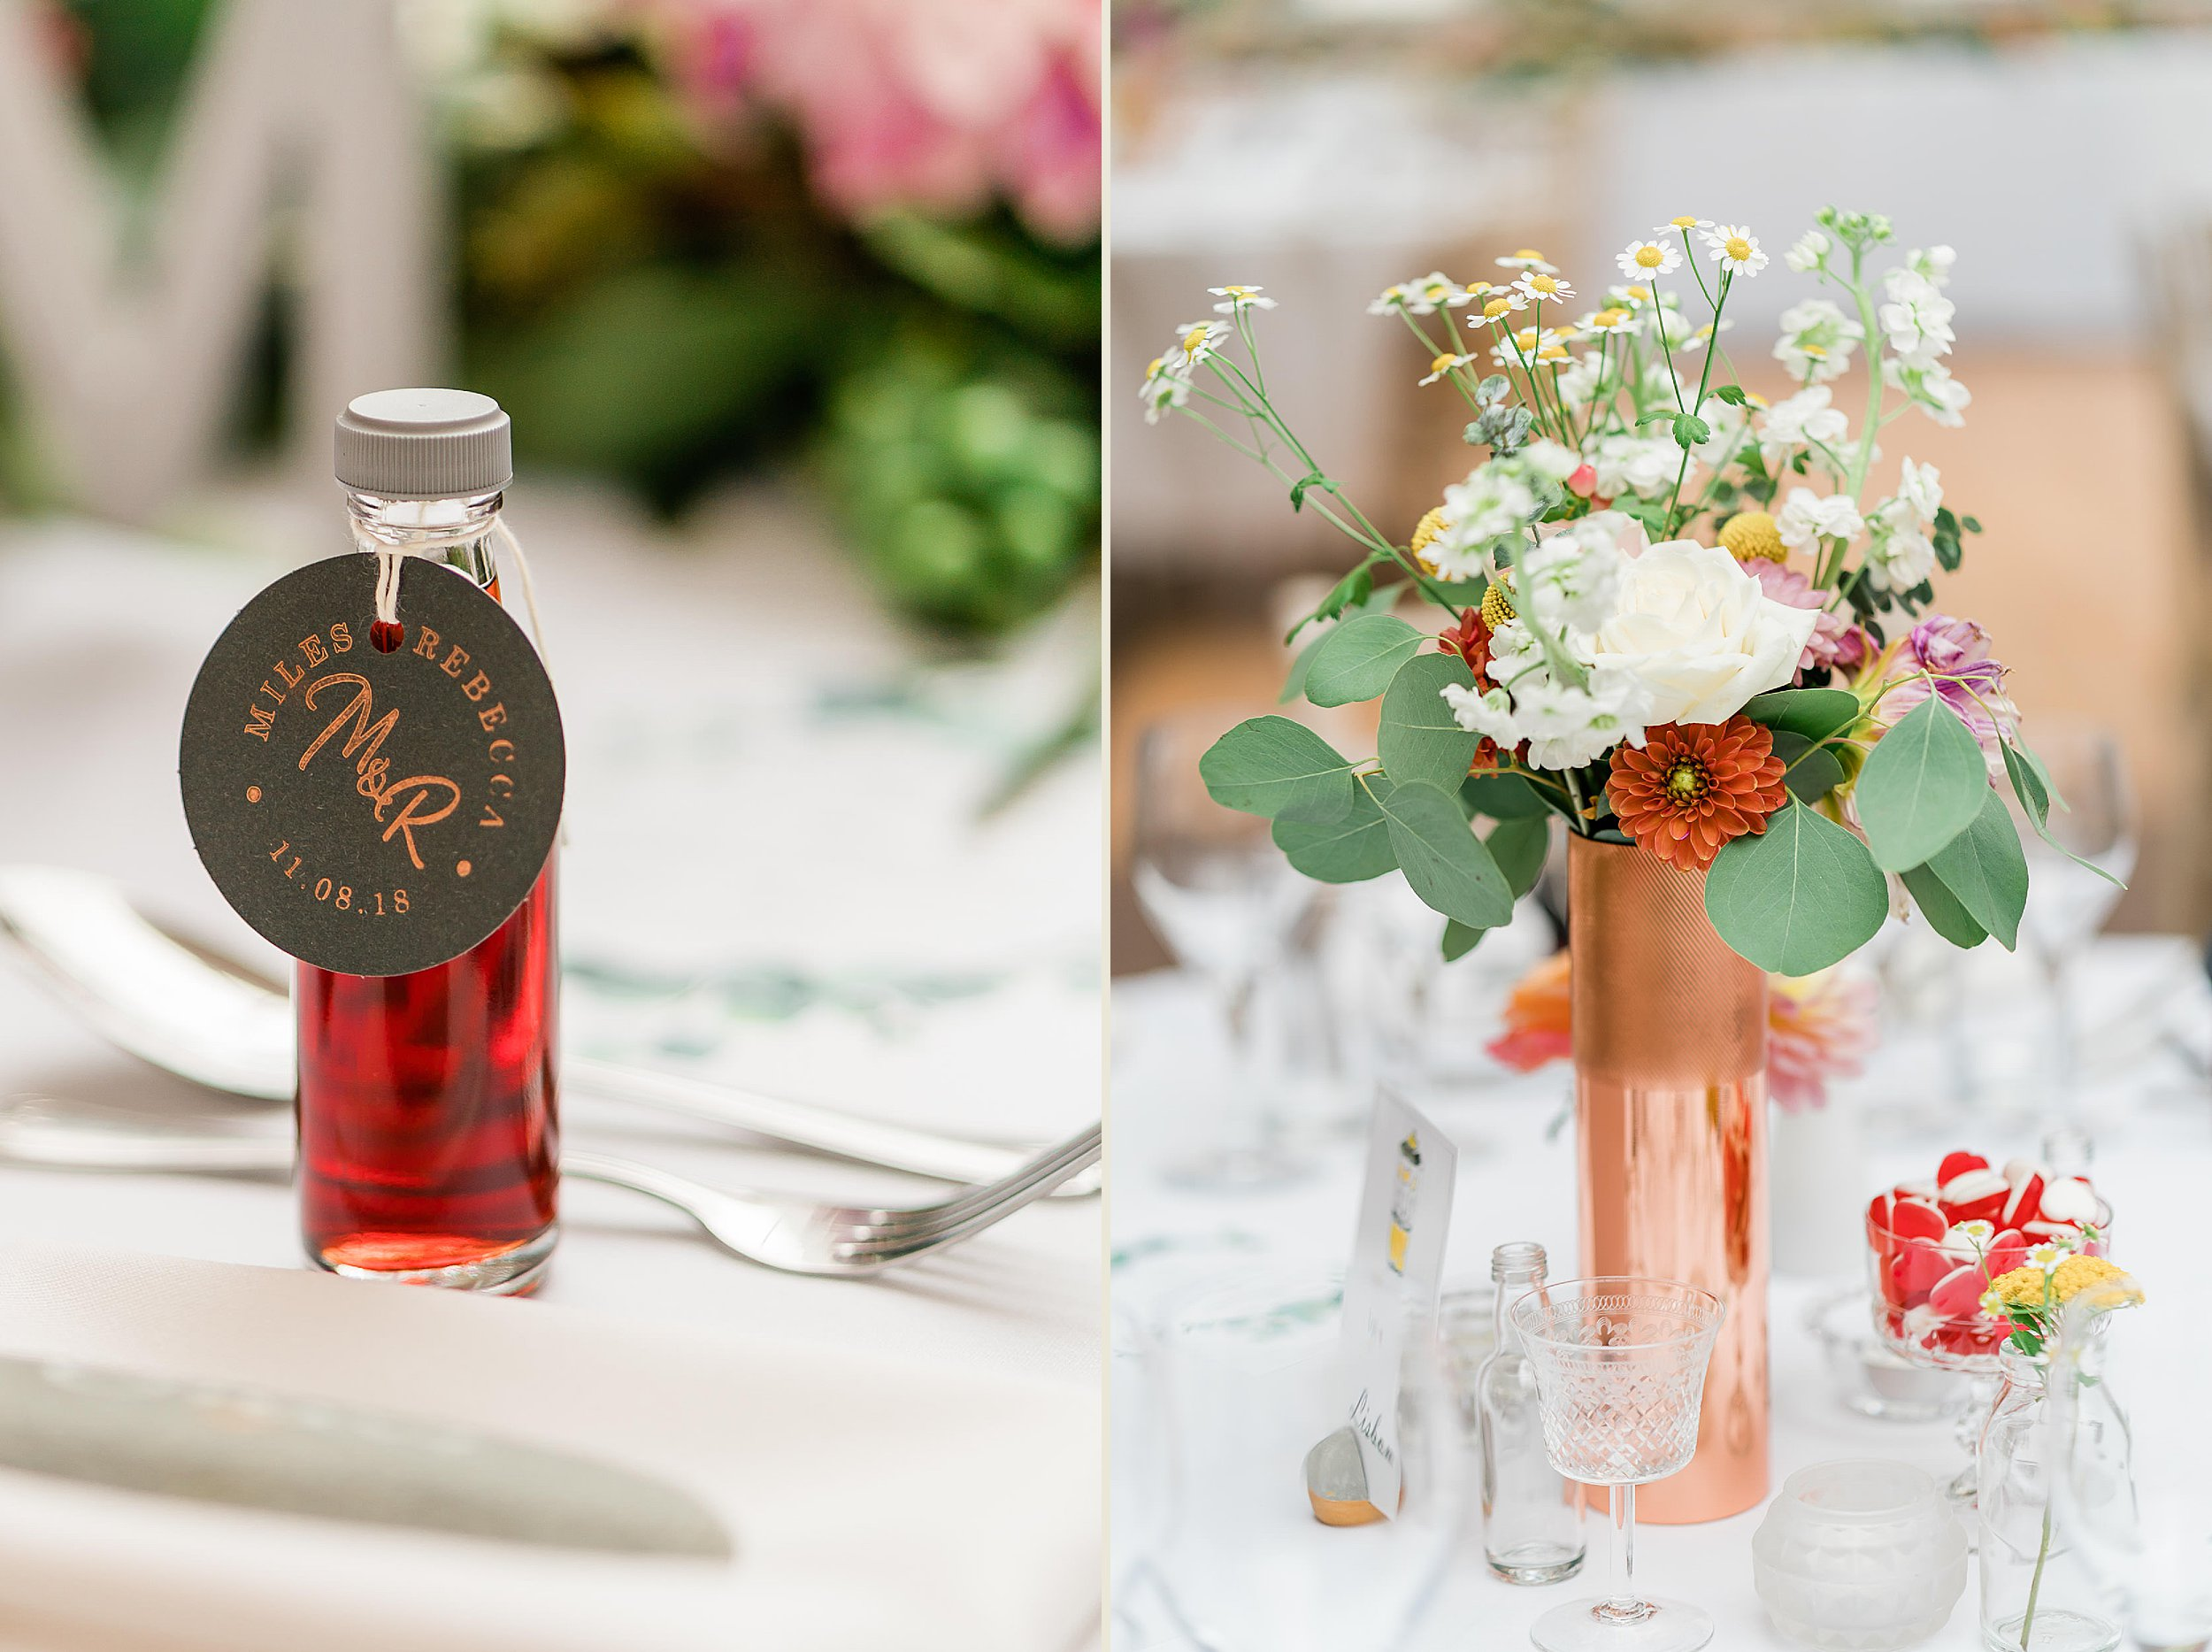 Orchardleigh Estate Wedding - Table Settings and Flower Displays